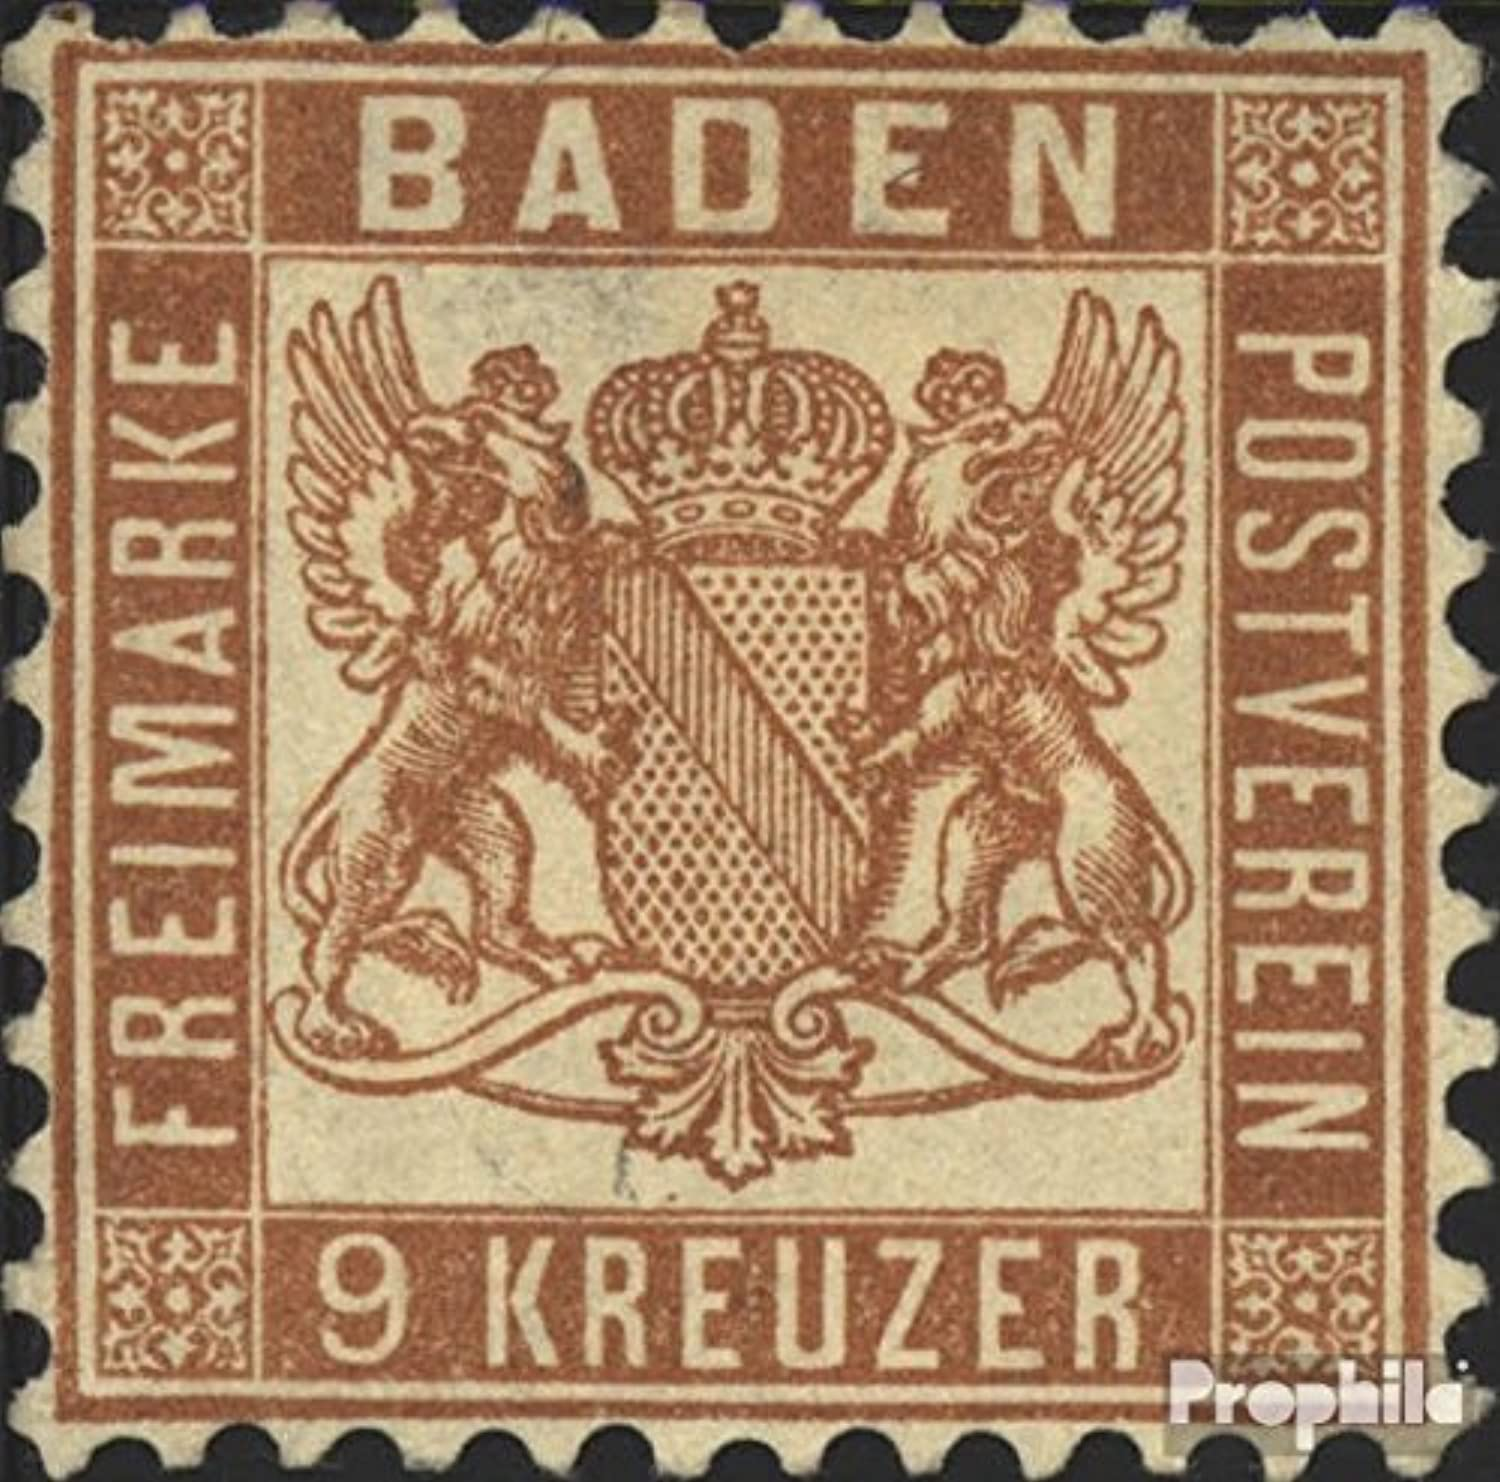 Baden 20ba Splendor Tested 1864 Crest (Stamps for Collectors)